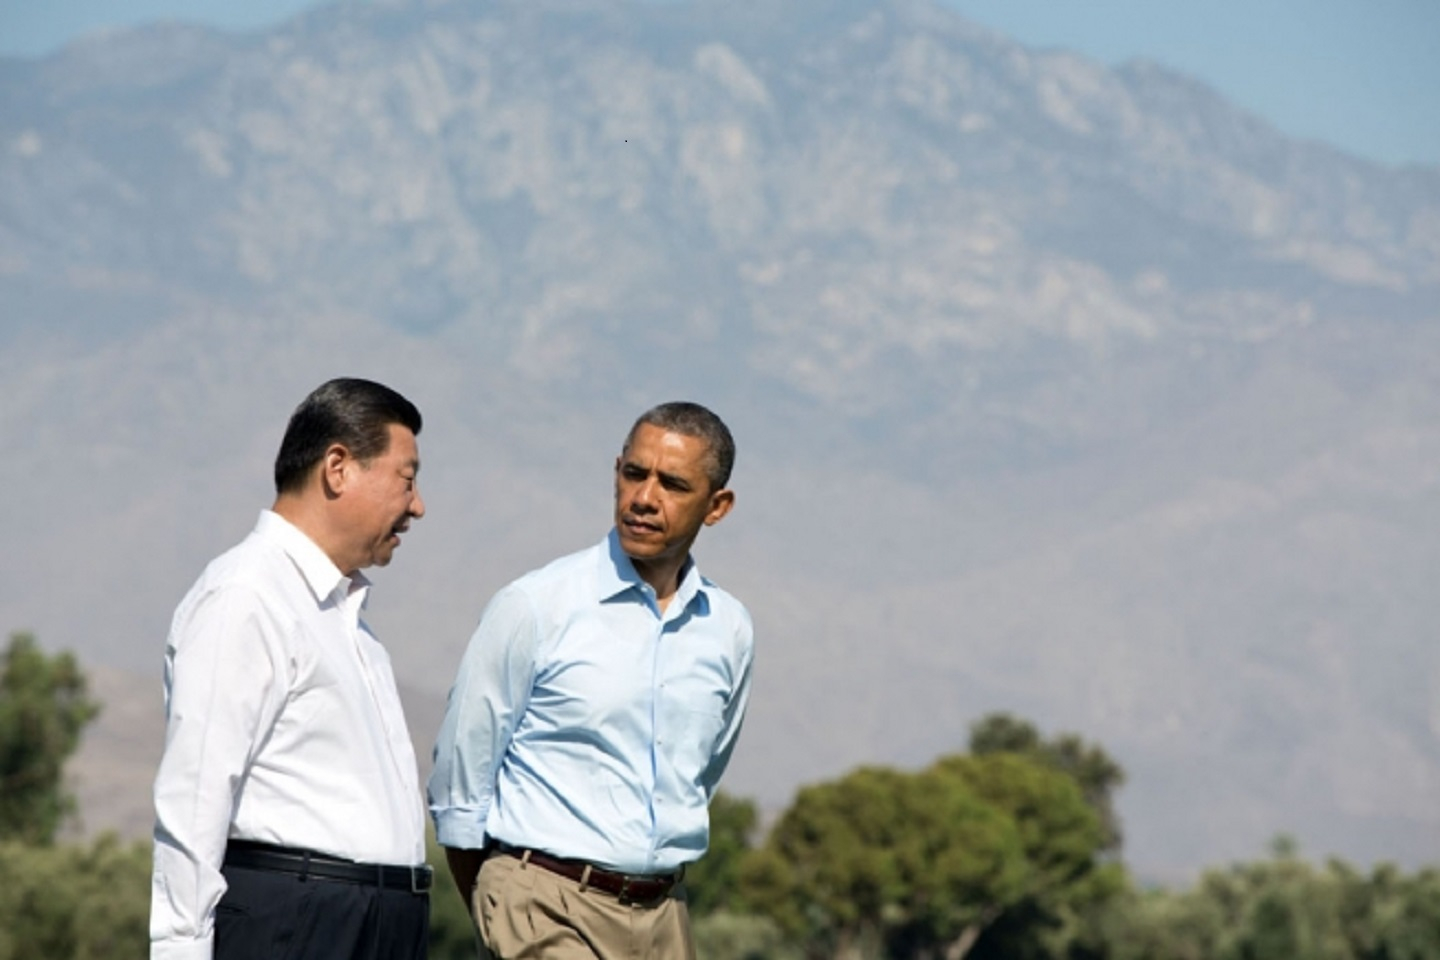 President Obama Walks With President Xi Jinping